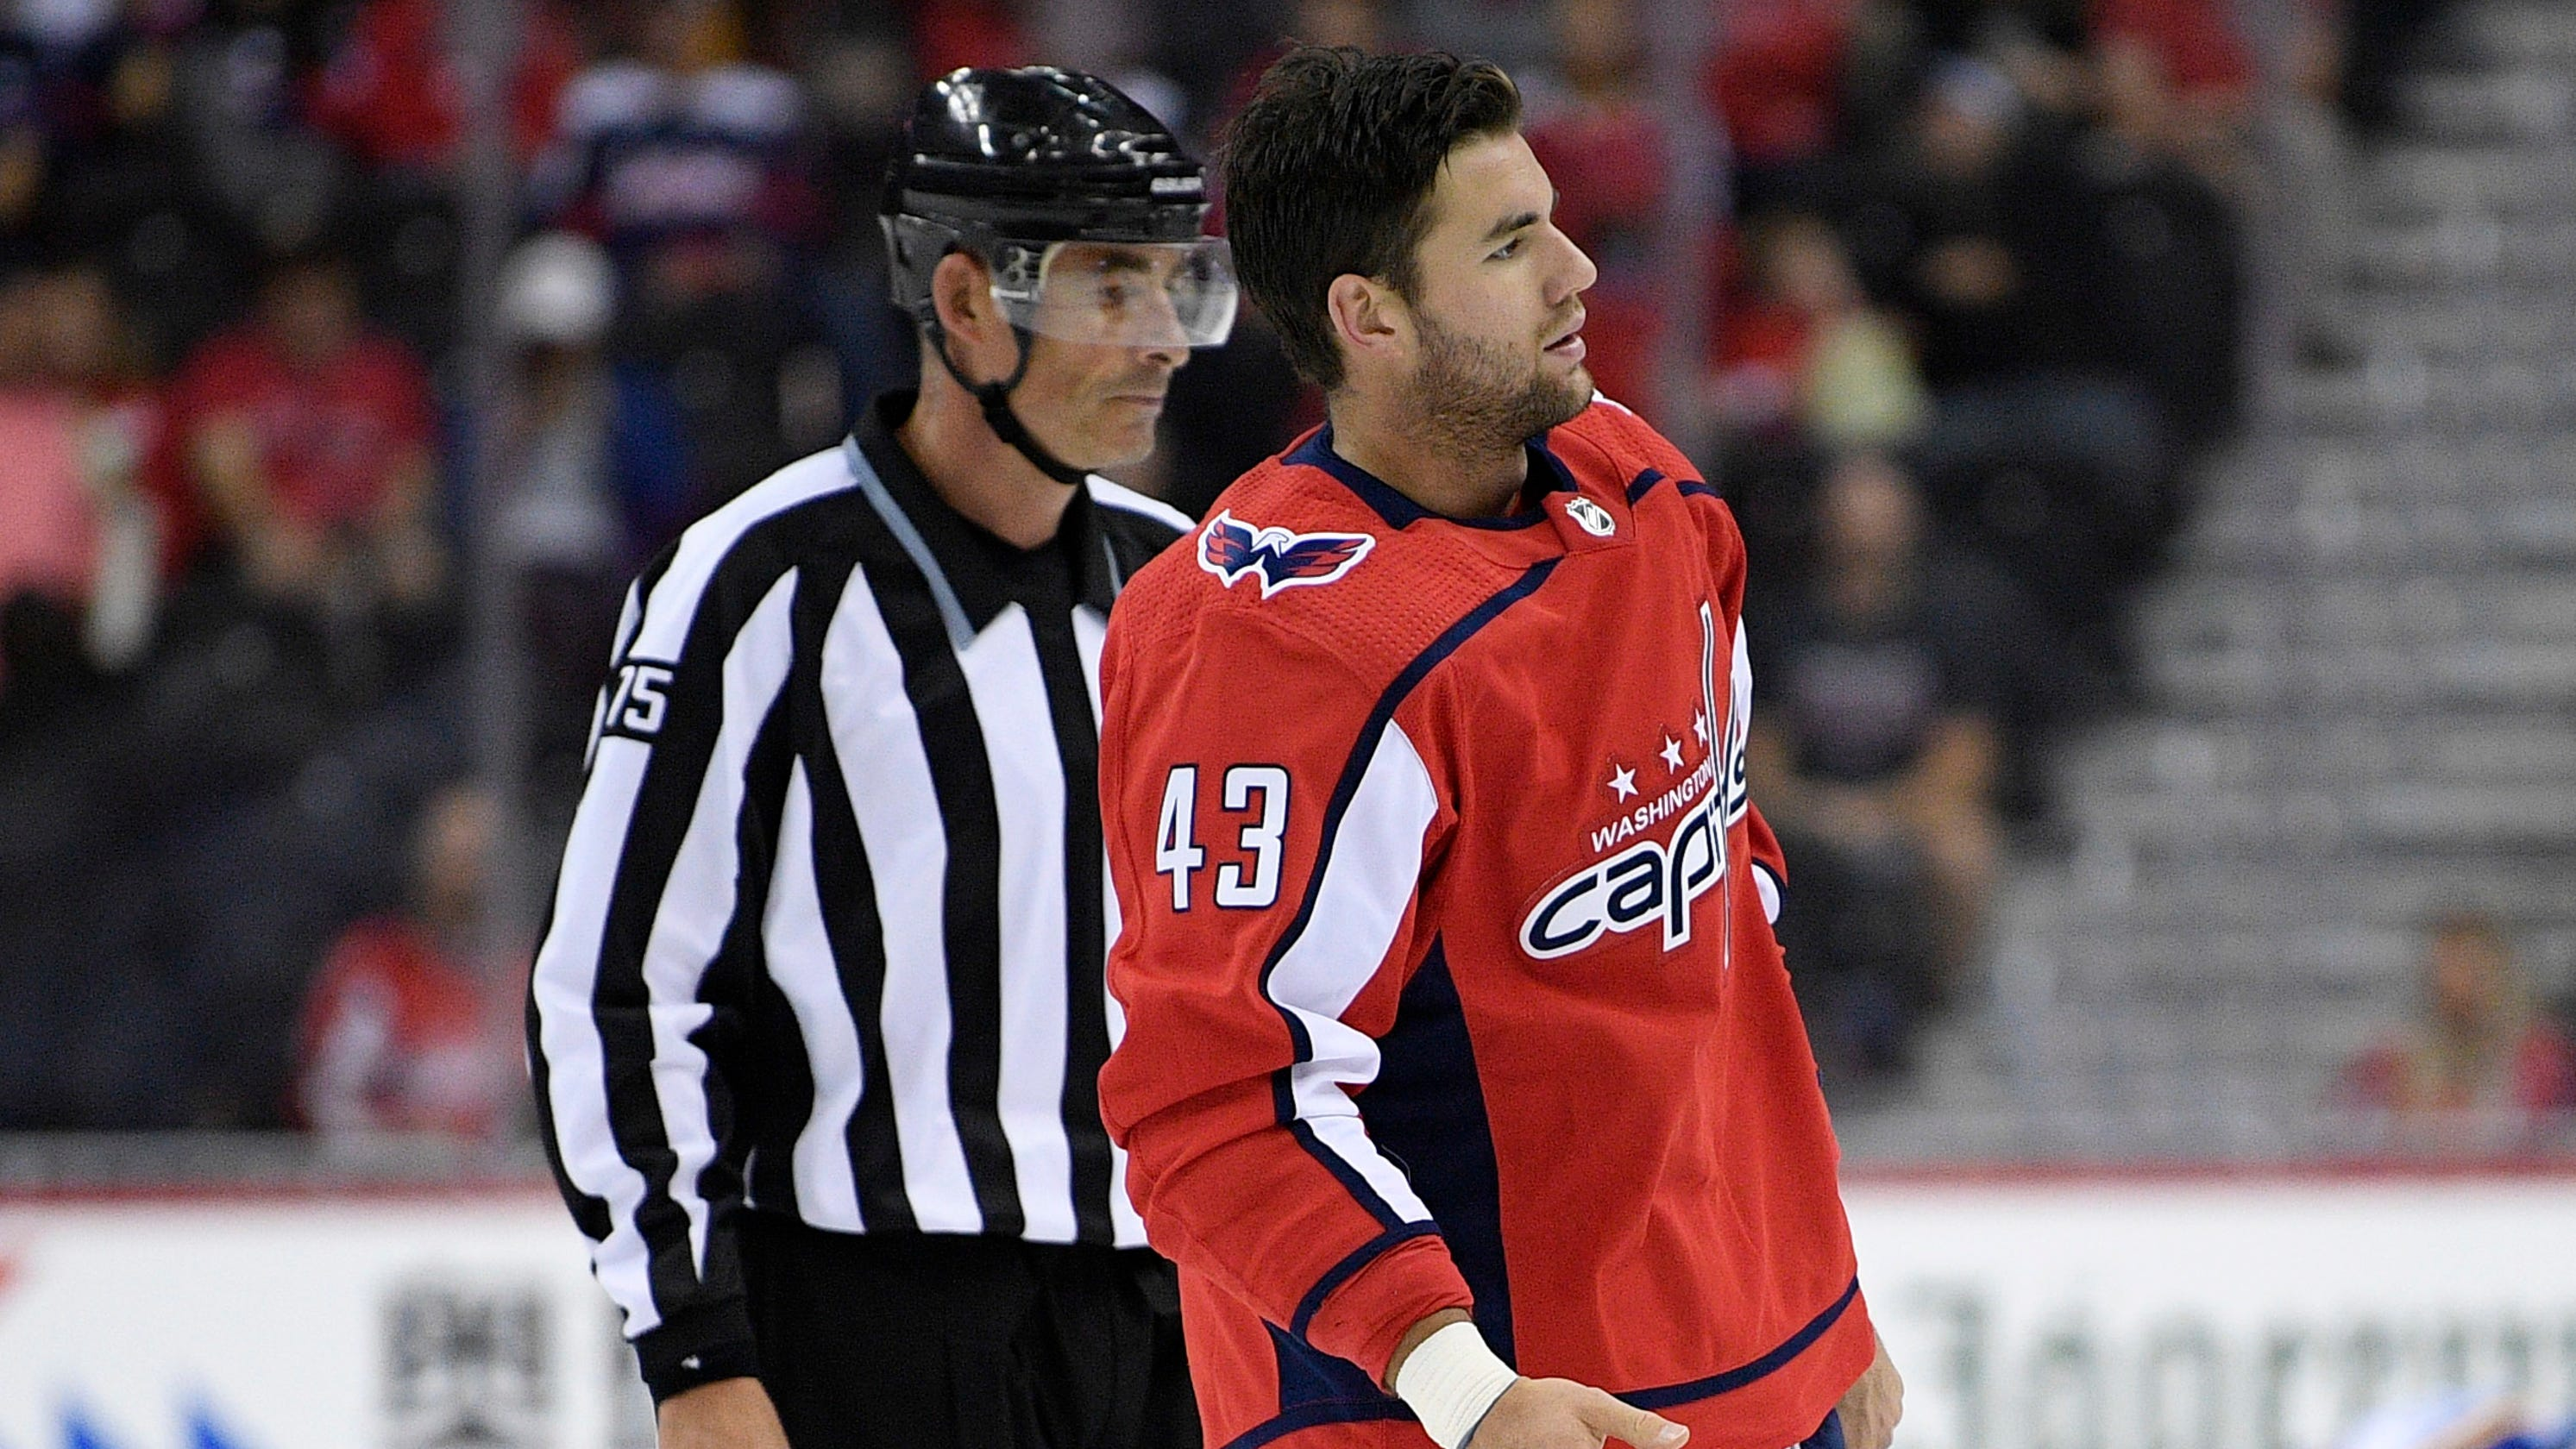 Washington Capitals  Tom Wilson suspended 20 games for hit to head 77a91f0e7